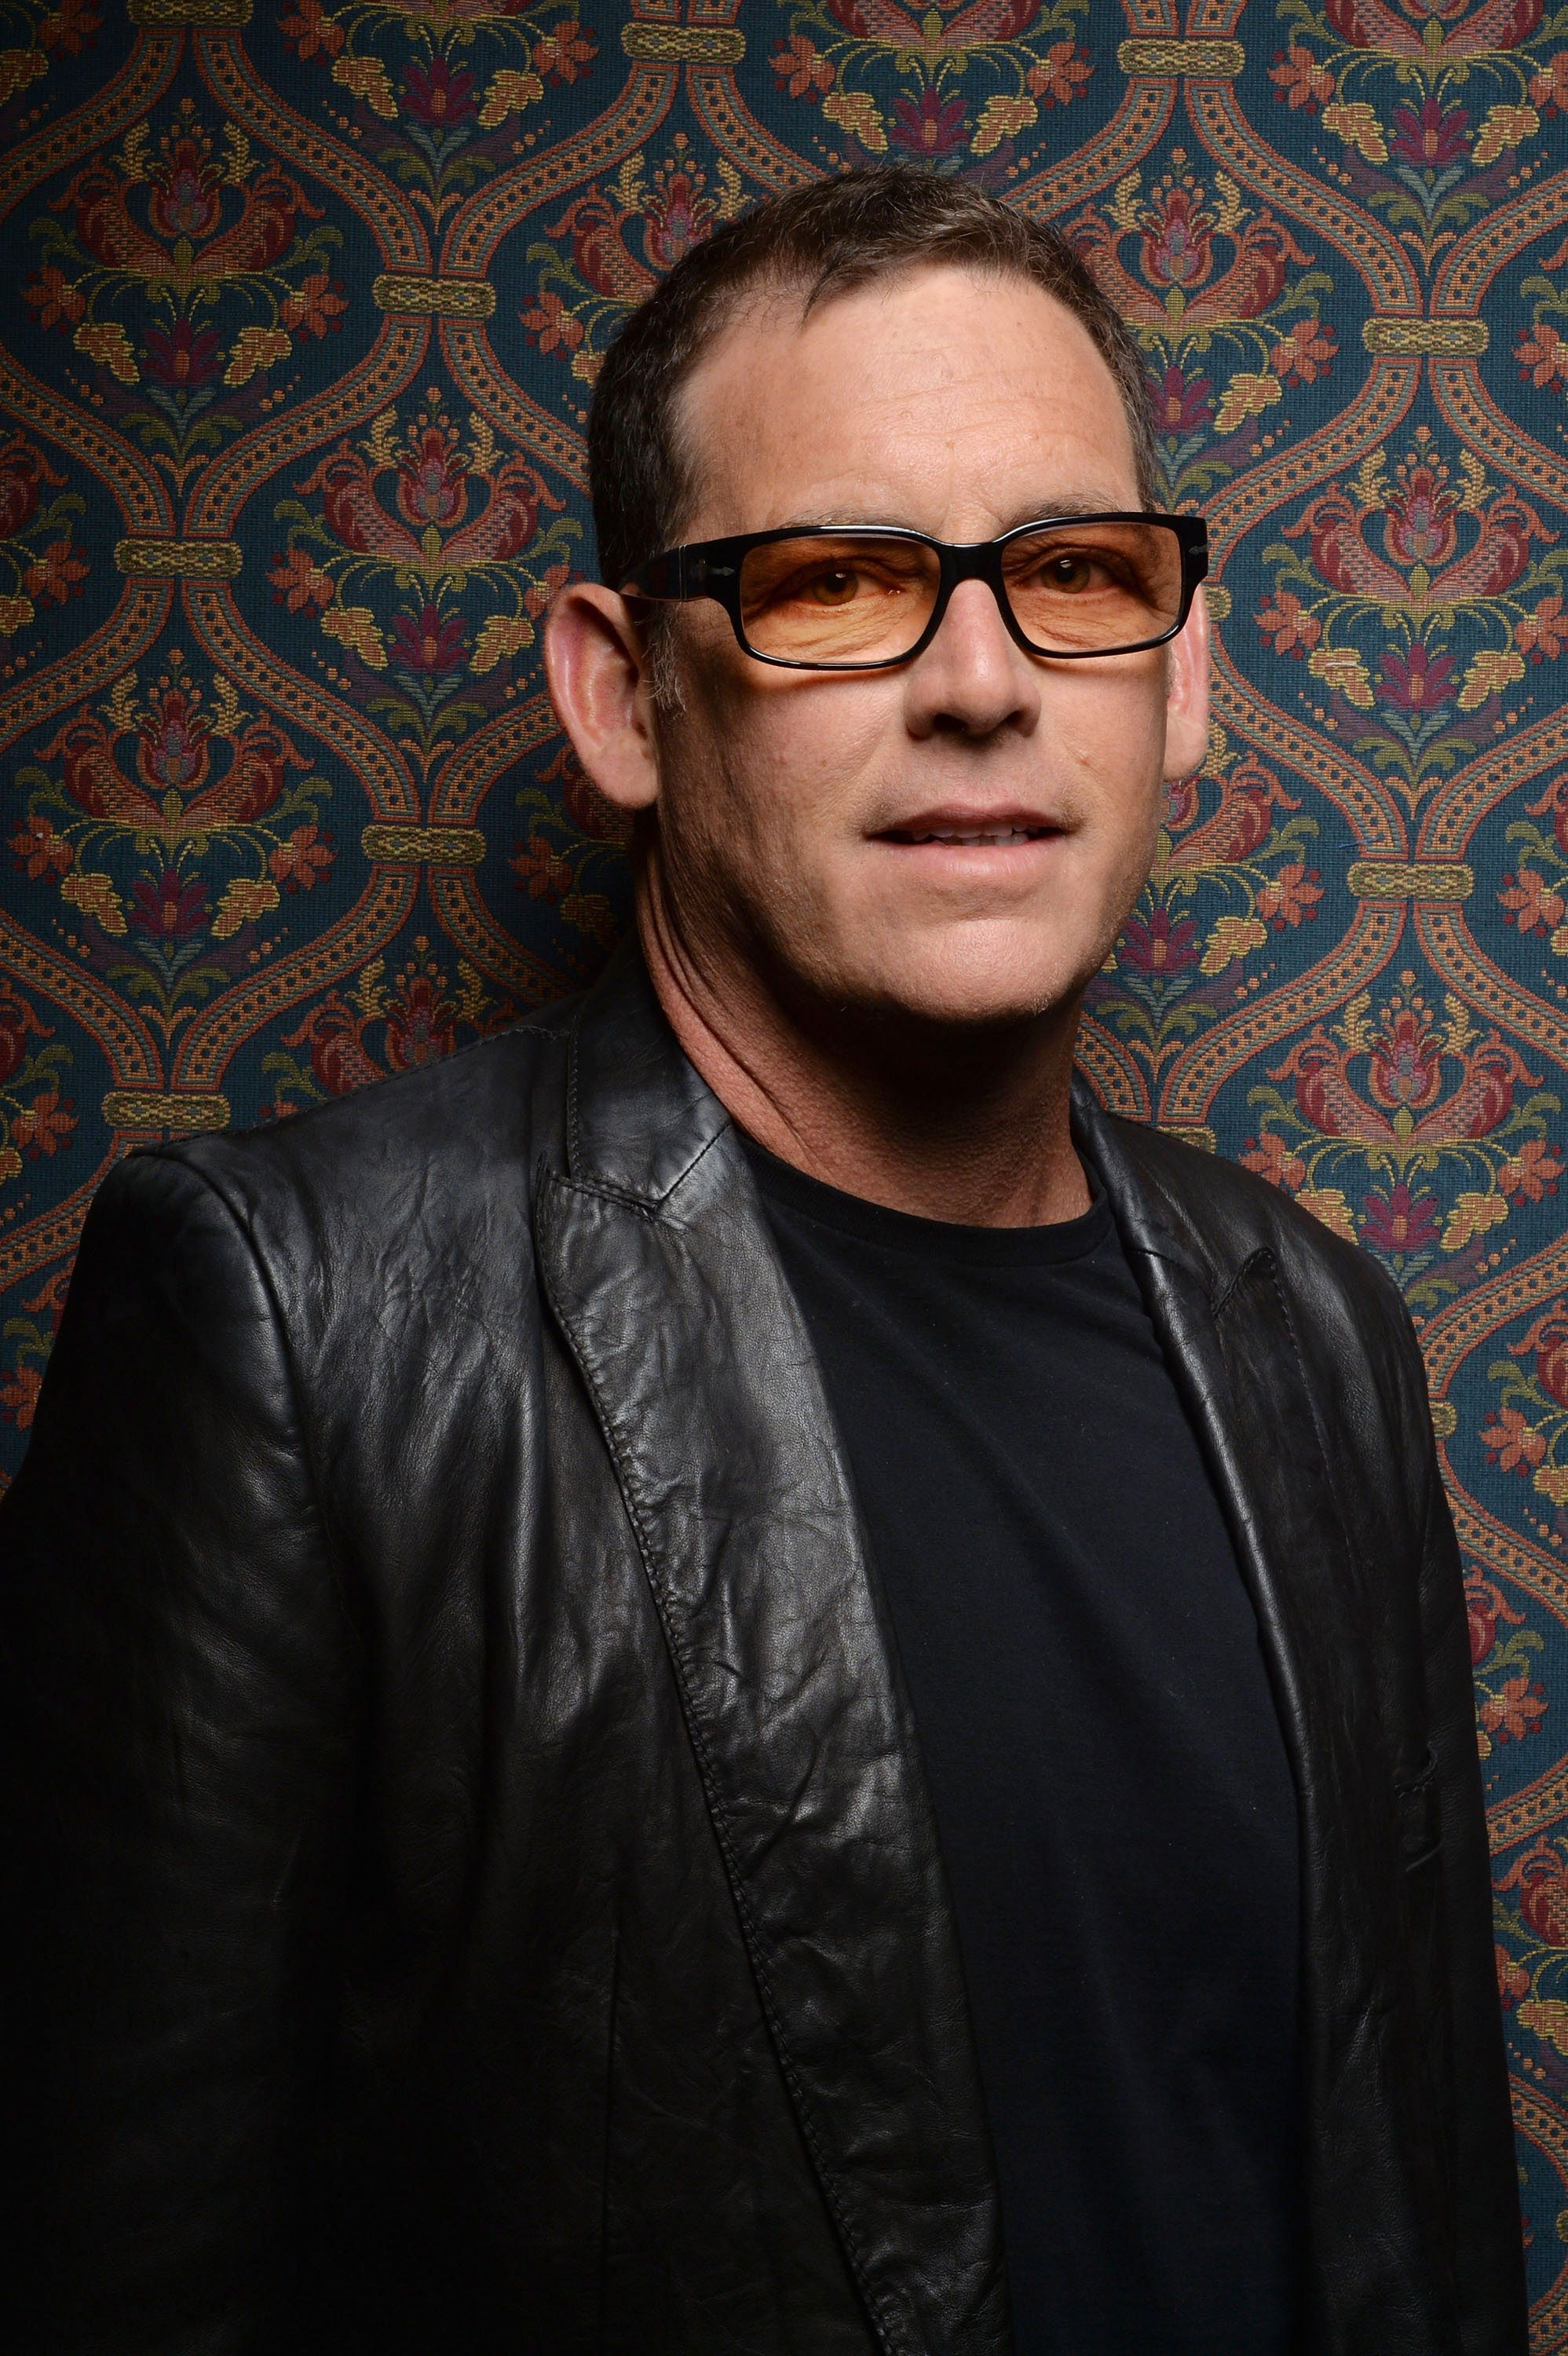 'The Bachelor' Creator Mike Fleiss Has Been Accused of Attacking His Pregnant Wife